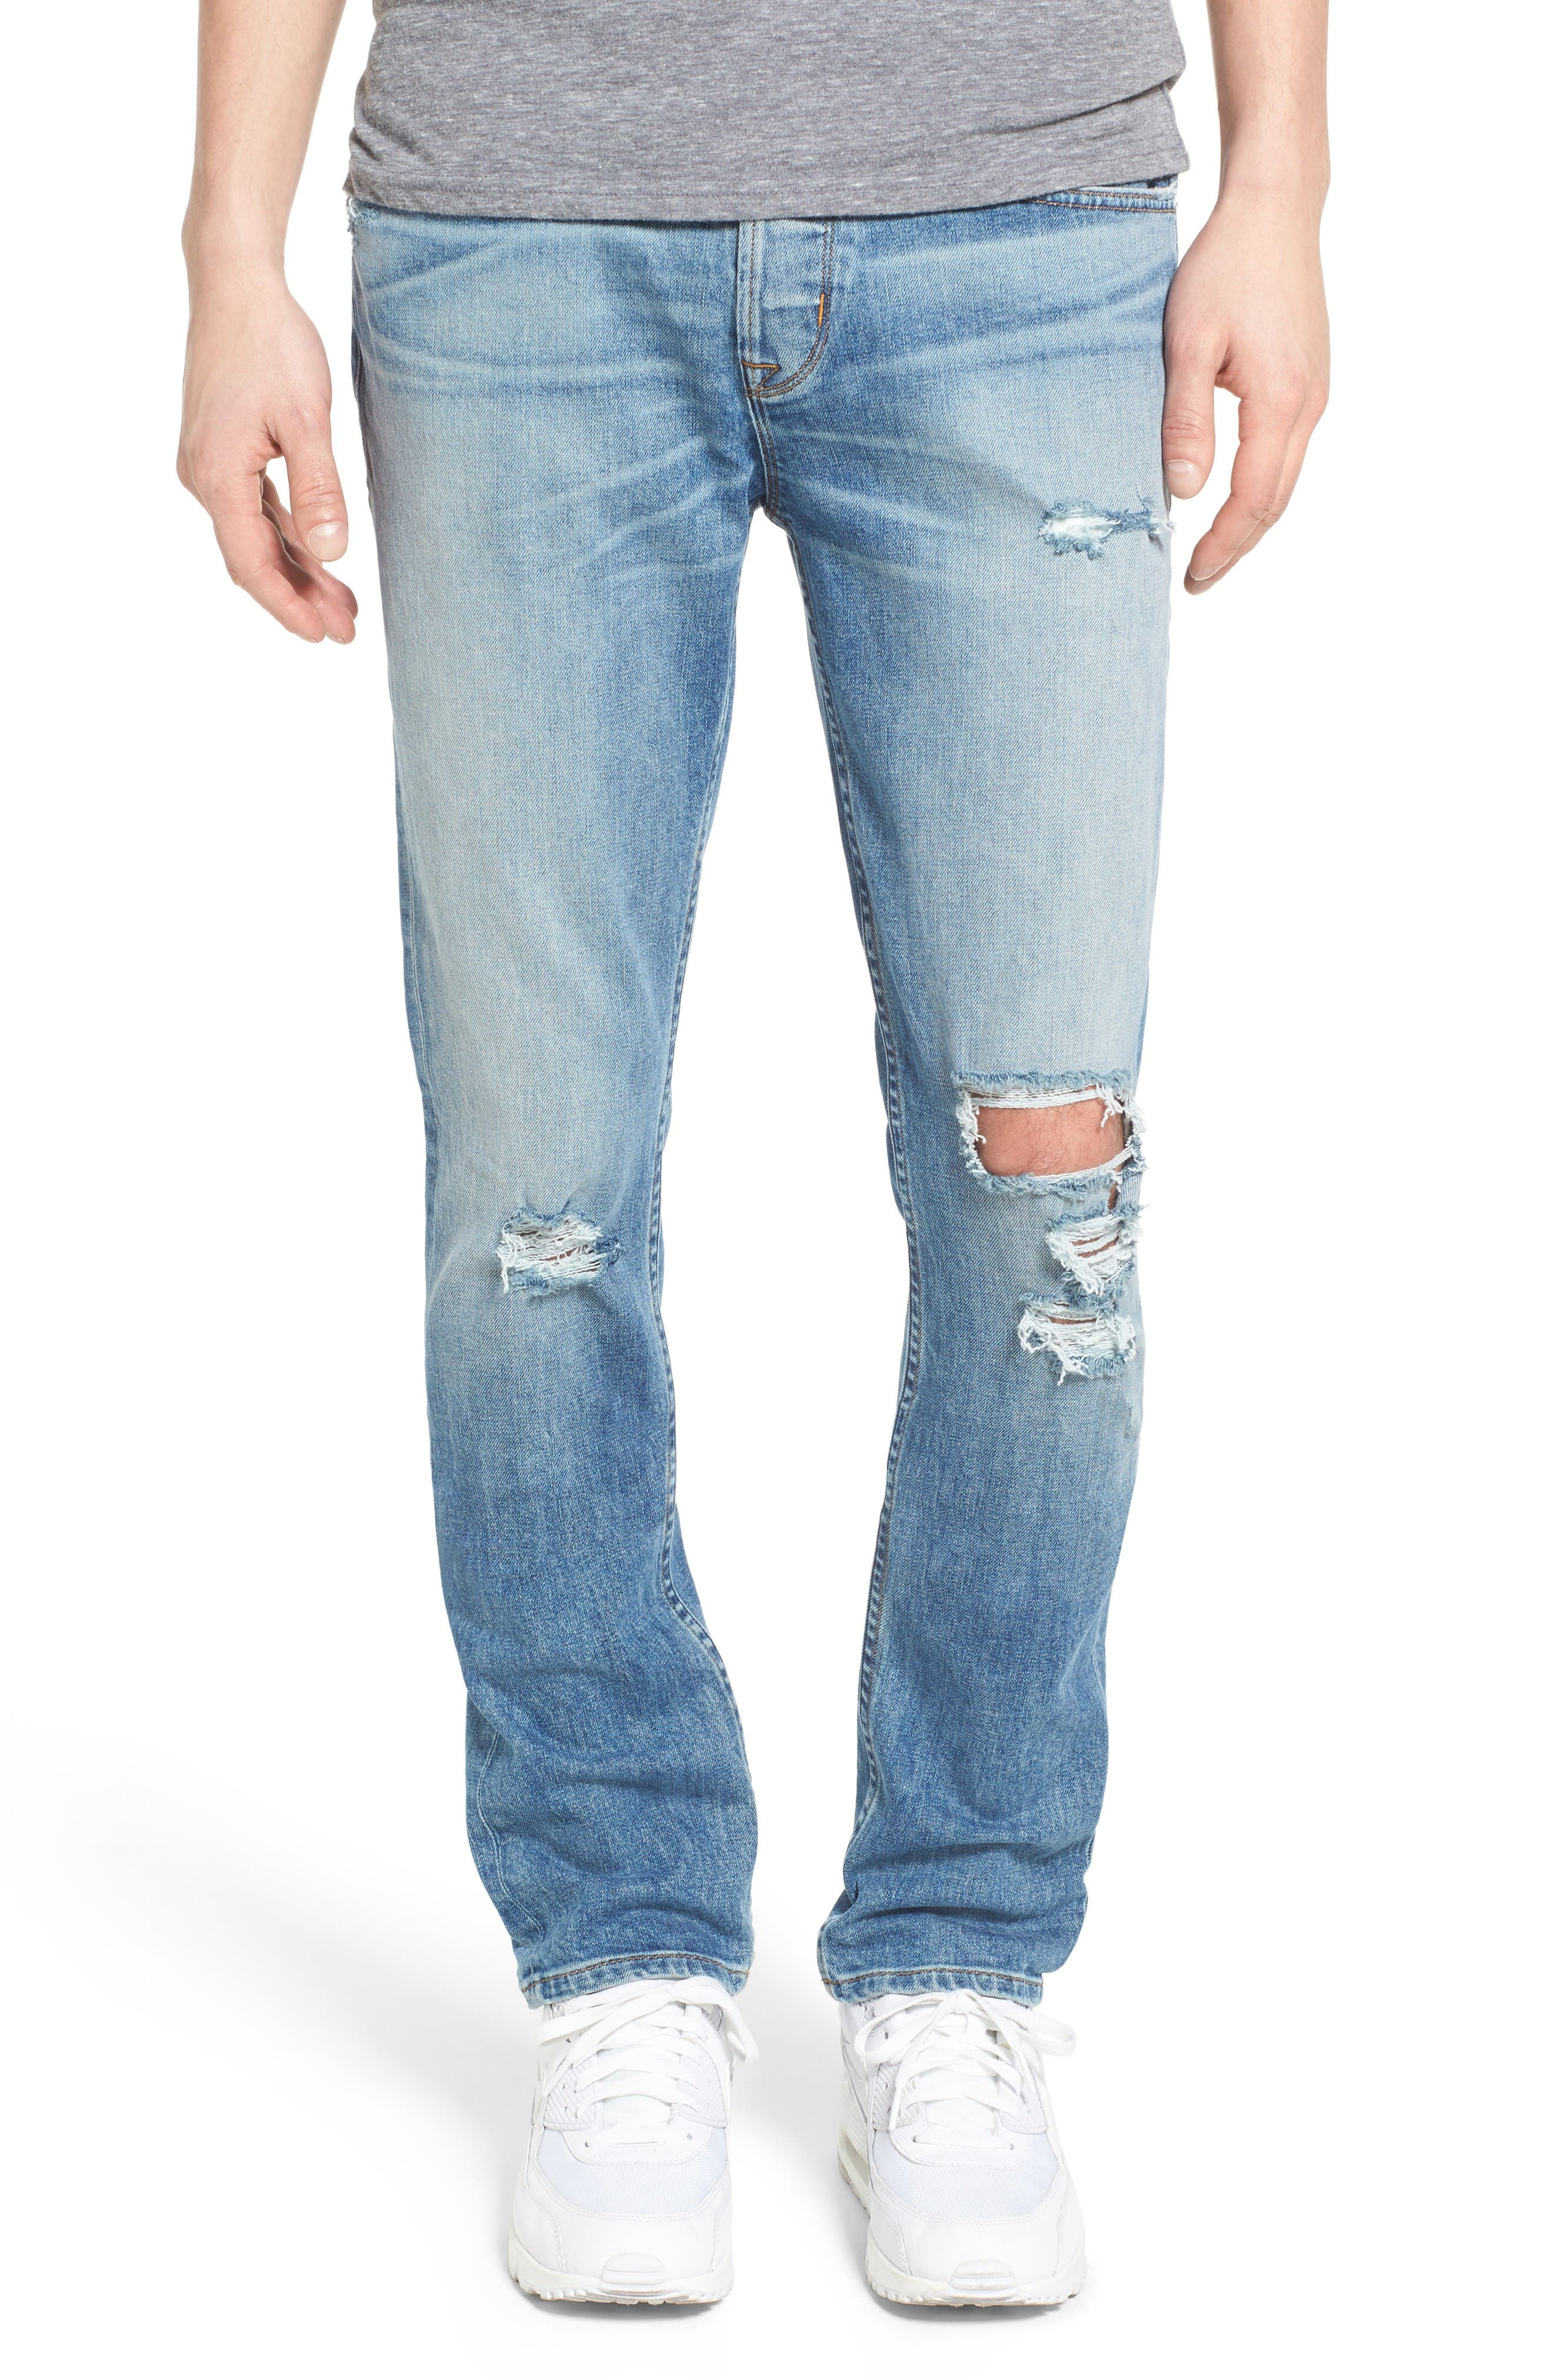 Sator Skinny Fit Jeans,                         Main,                         color, Banned